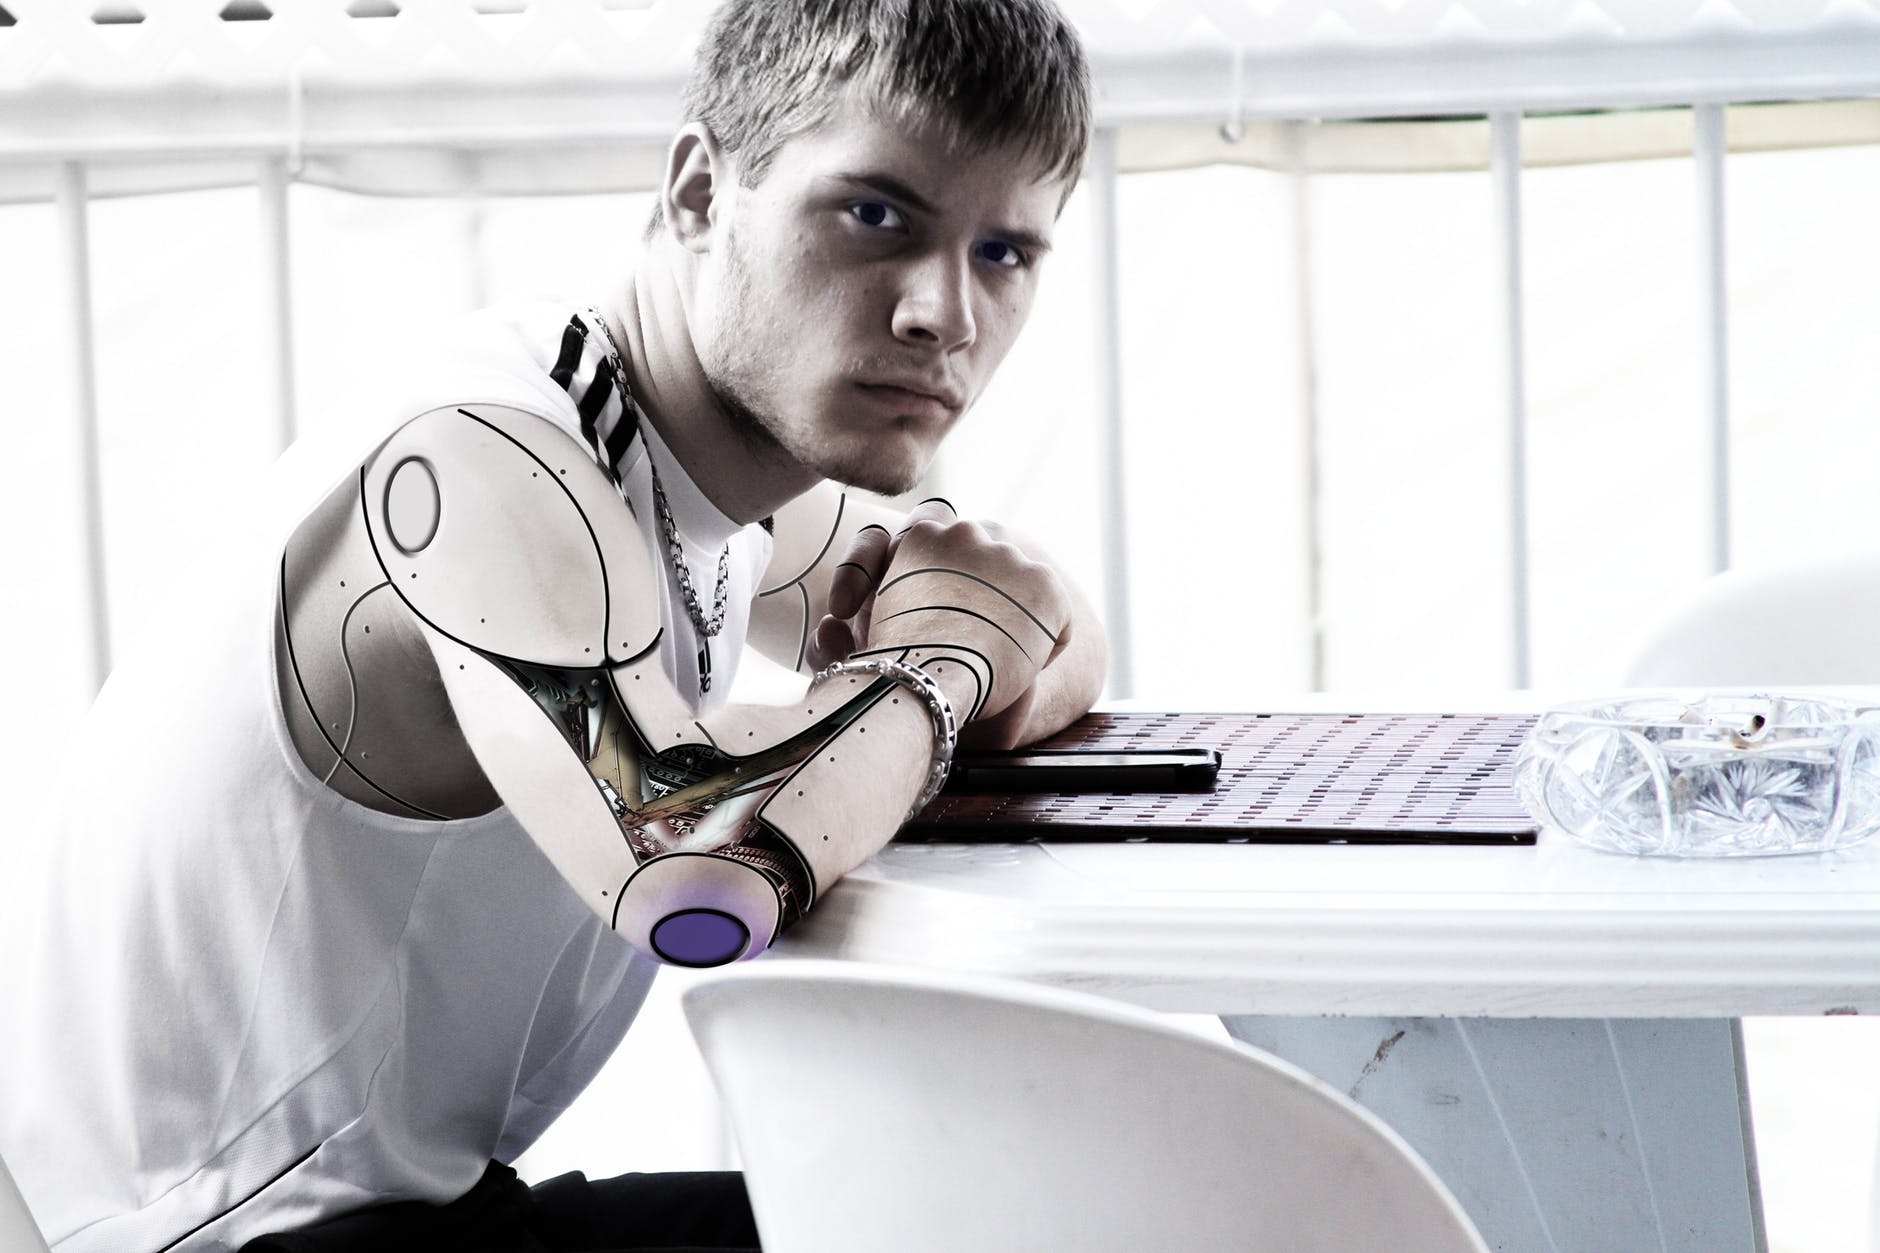 Transhumanism, a human right